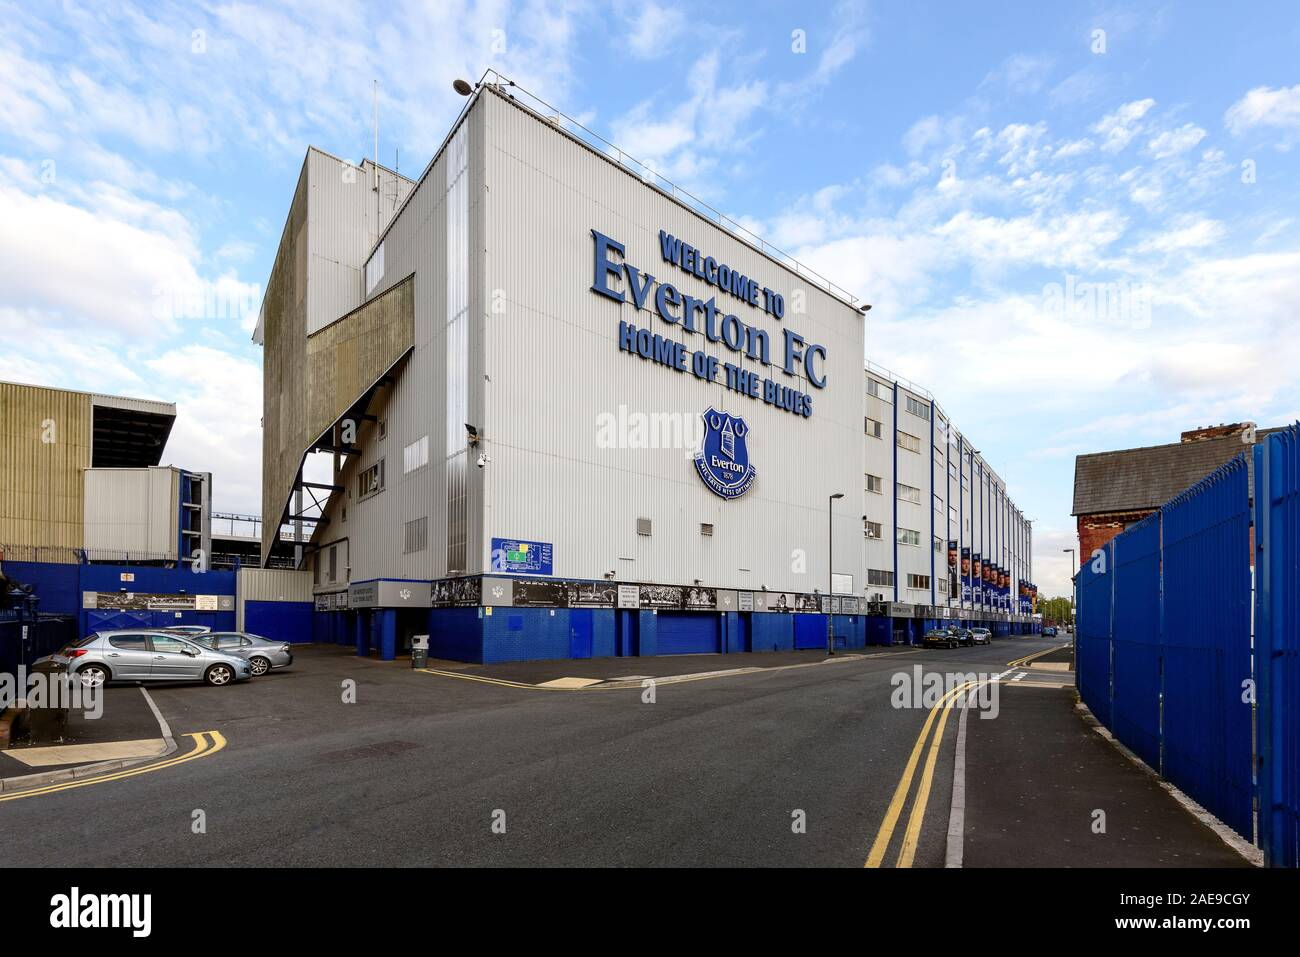 LIVERPOOL, ENGLAND - MAY 14,2015 : The Goodison park Stadium is the home stadium of Everton Football Club. Stock Photo